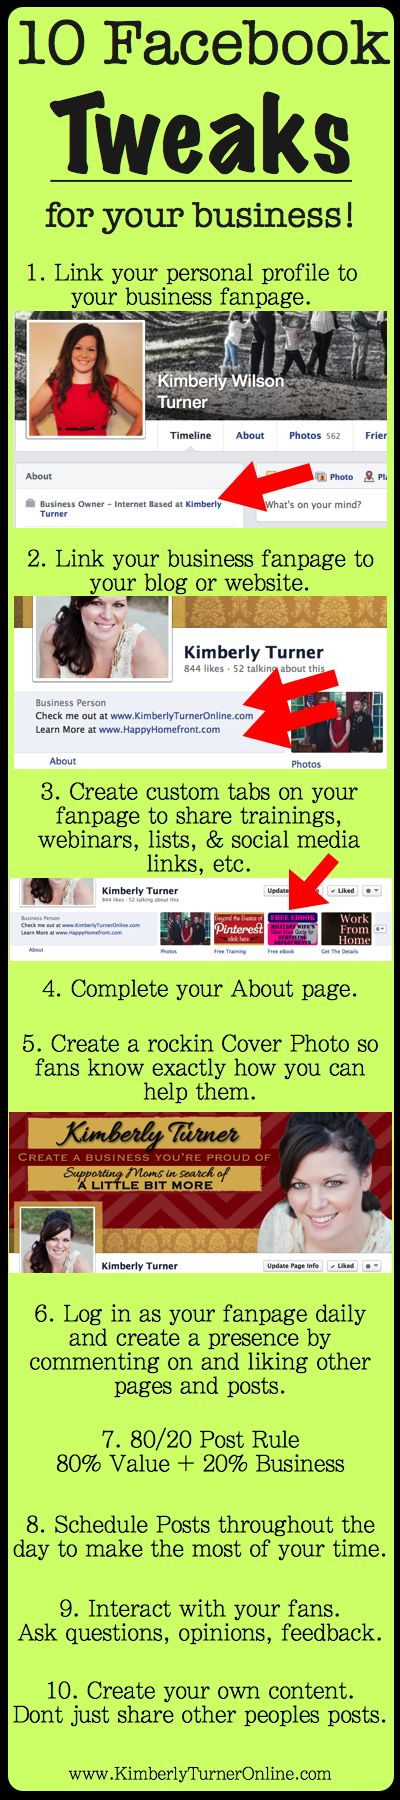 10 Facebook Tweaks for your Business